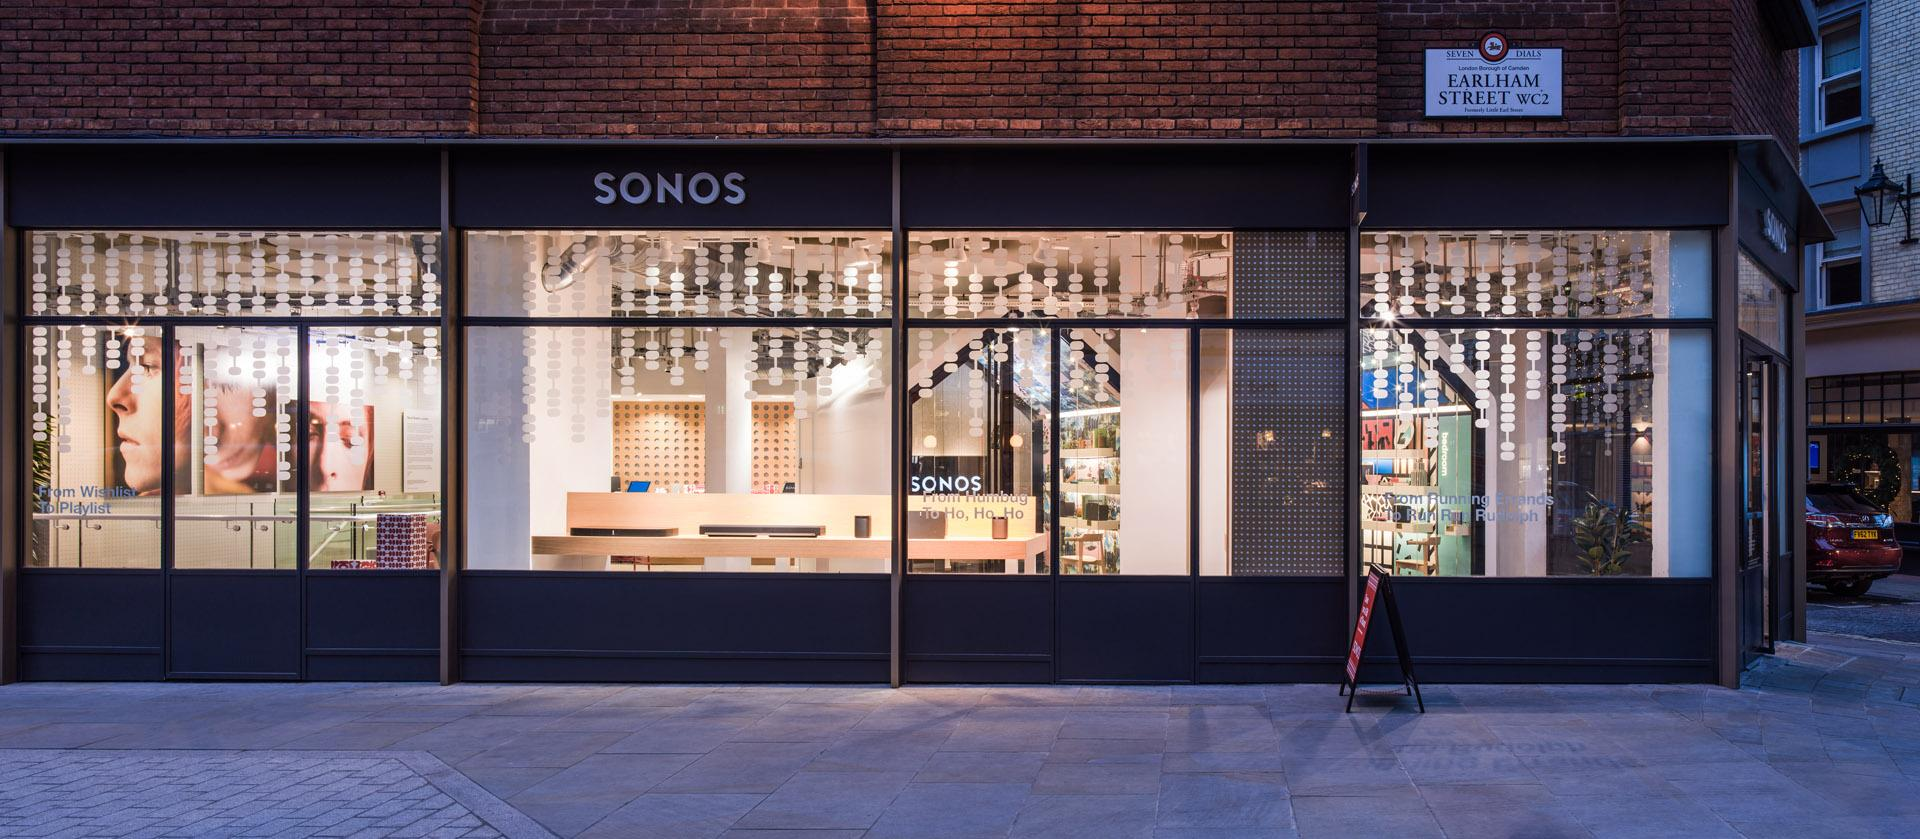 Sonos covent garden environmental design